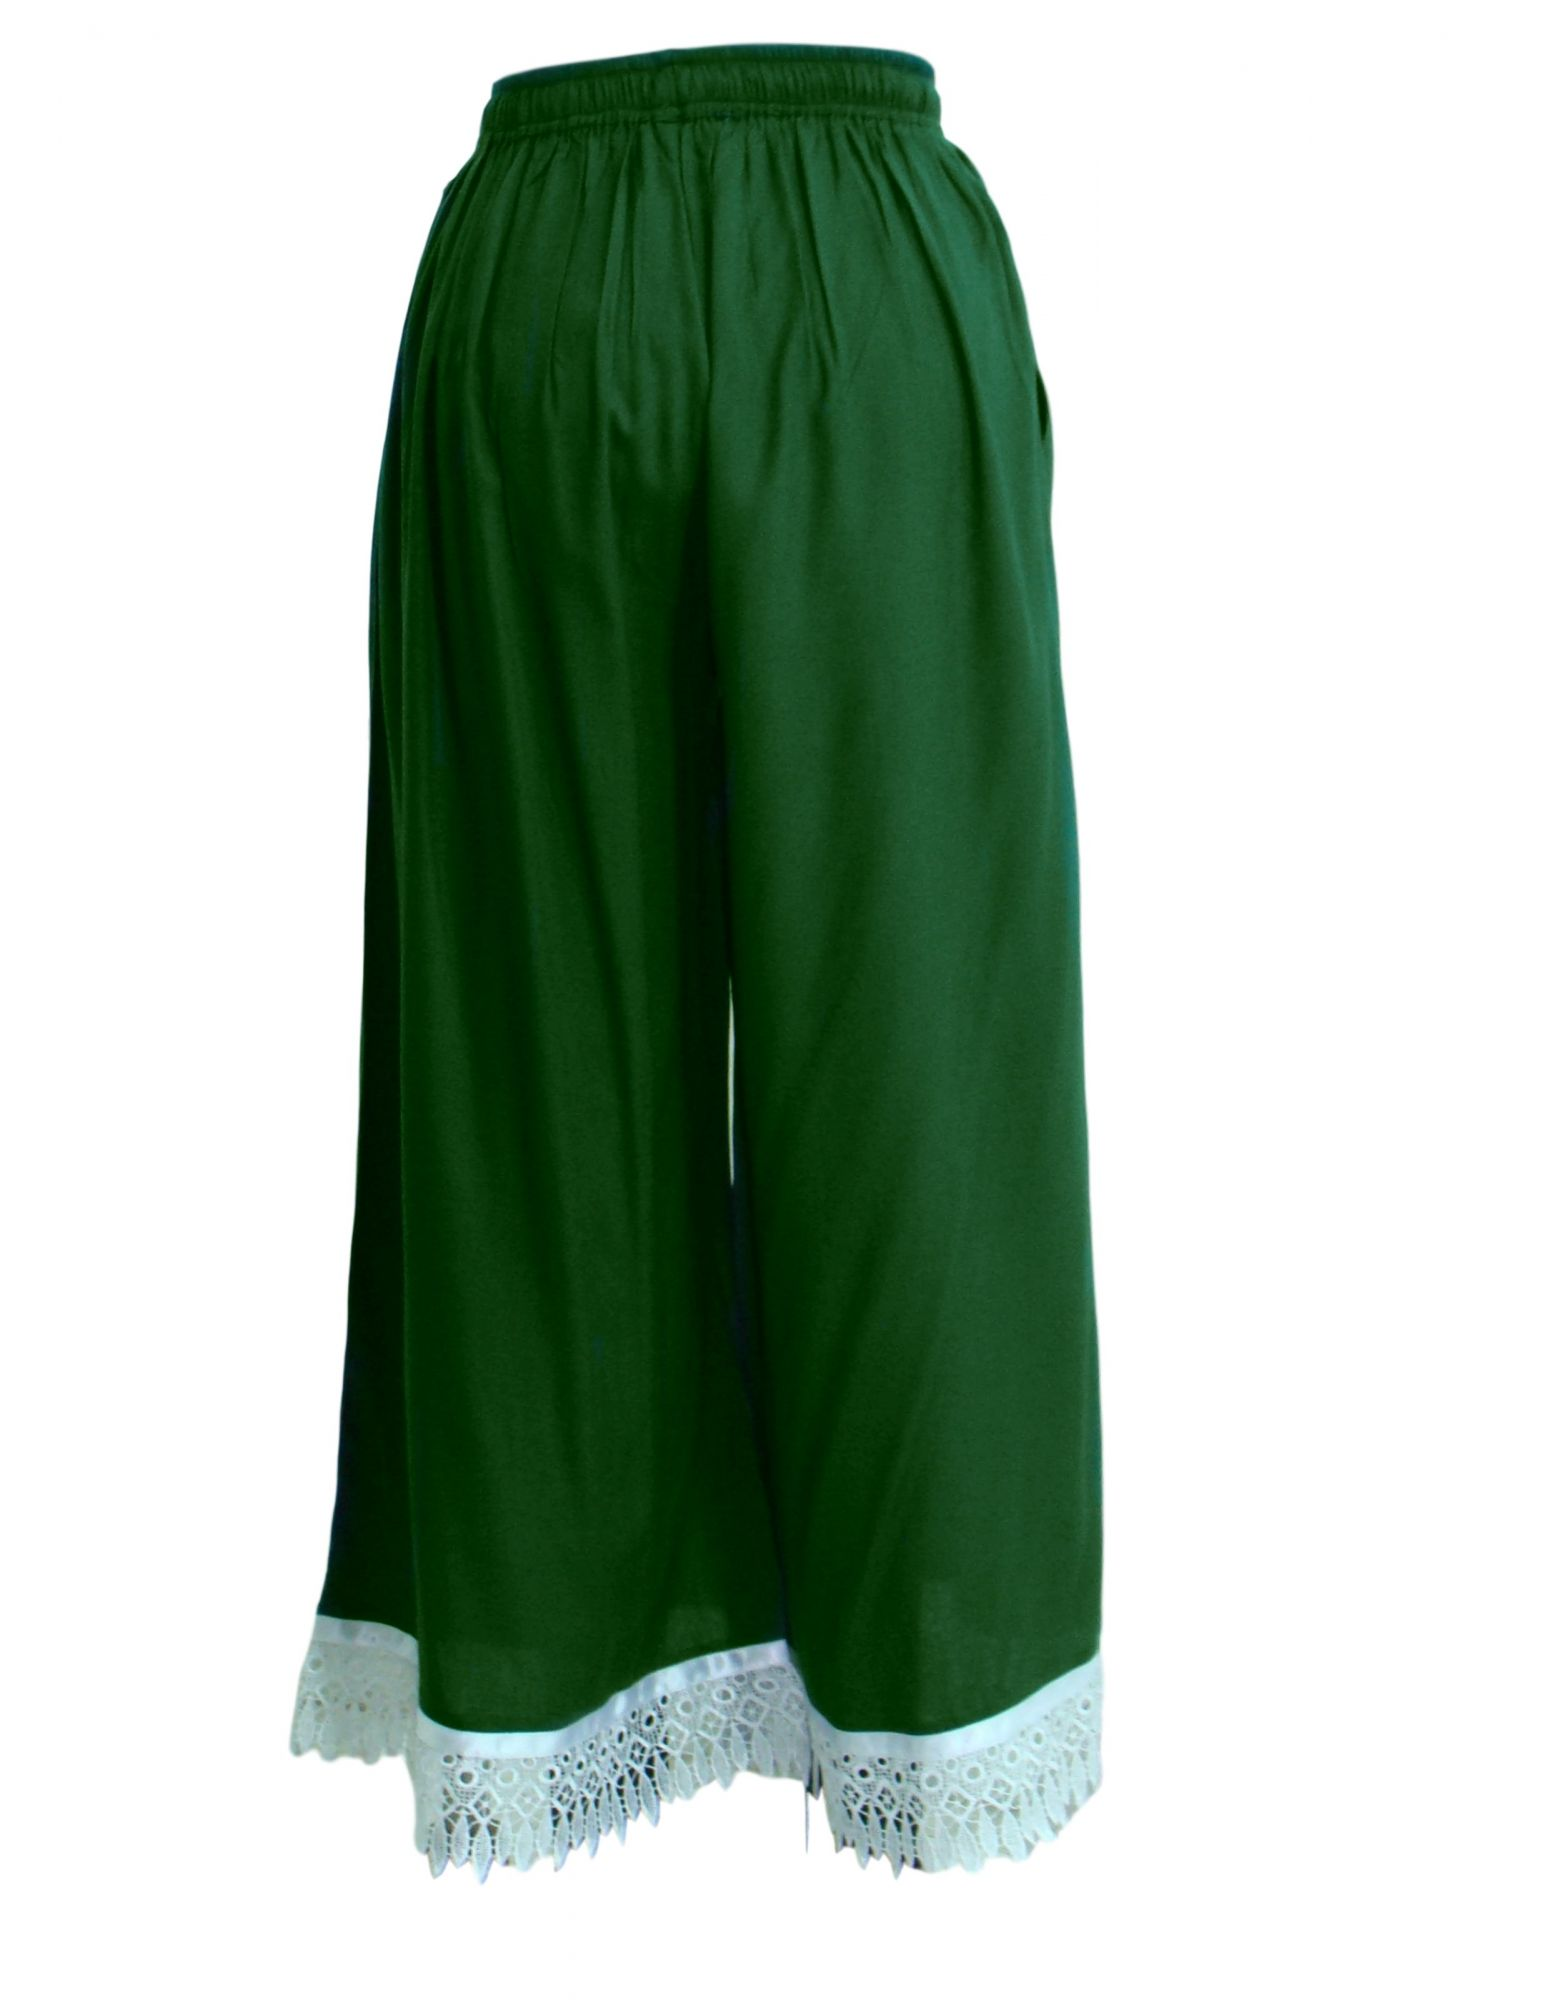 Embellished Regular Fit Palazzo Pant in Bottle Green